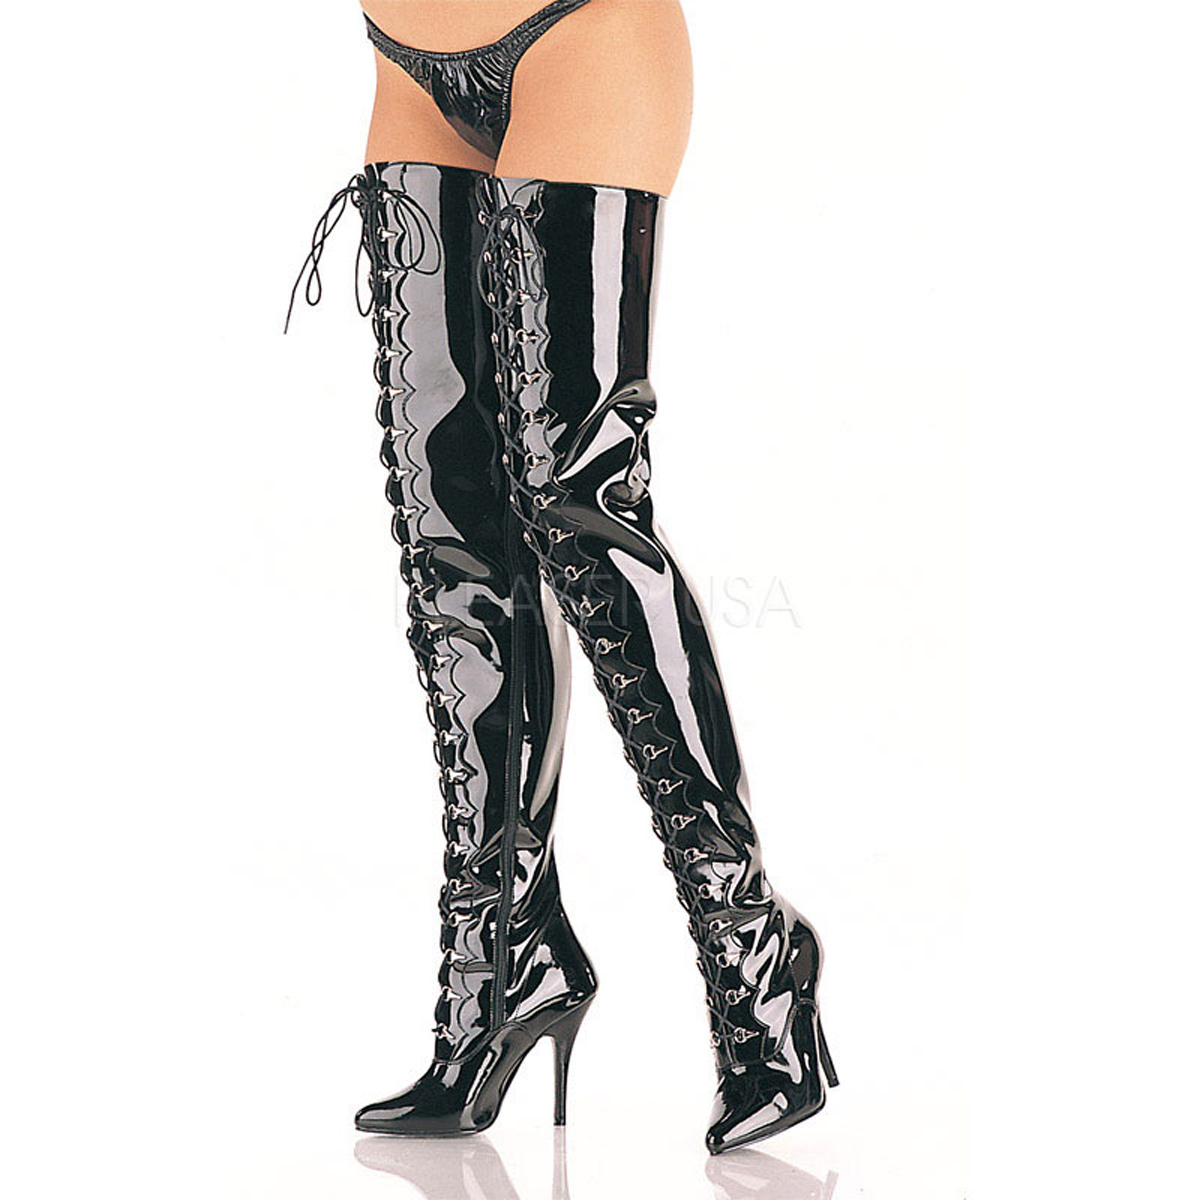 5 Inch Stiletto Heel D-Ring Lace-Up Crotch High Boots